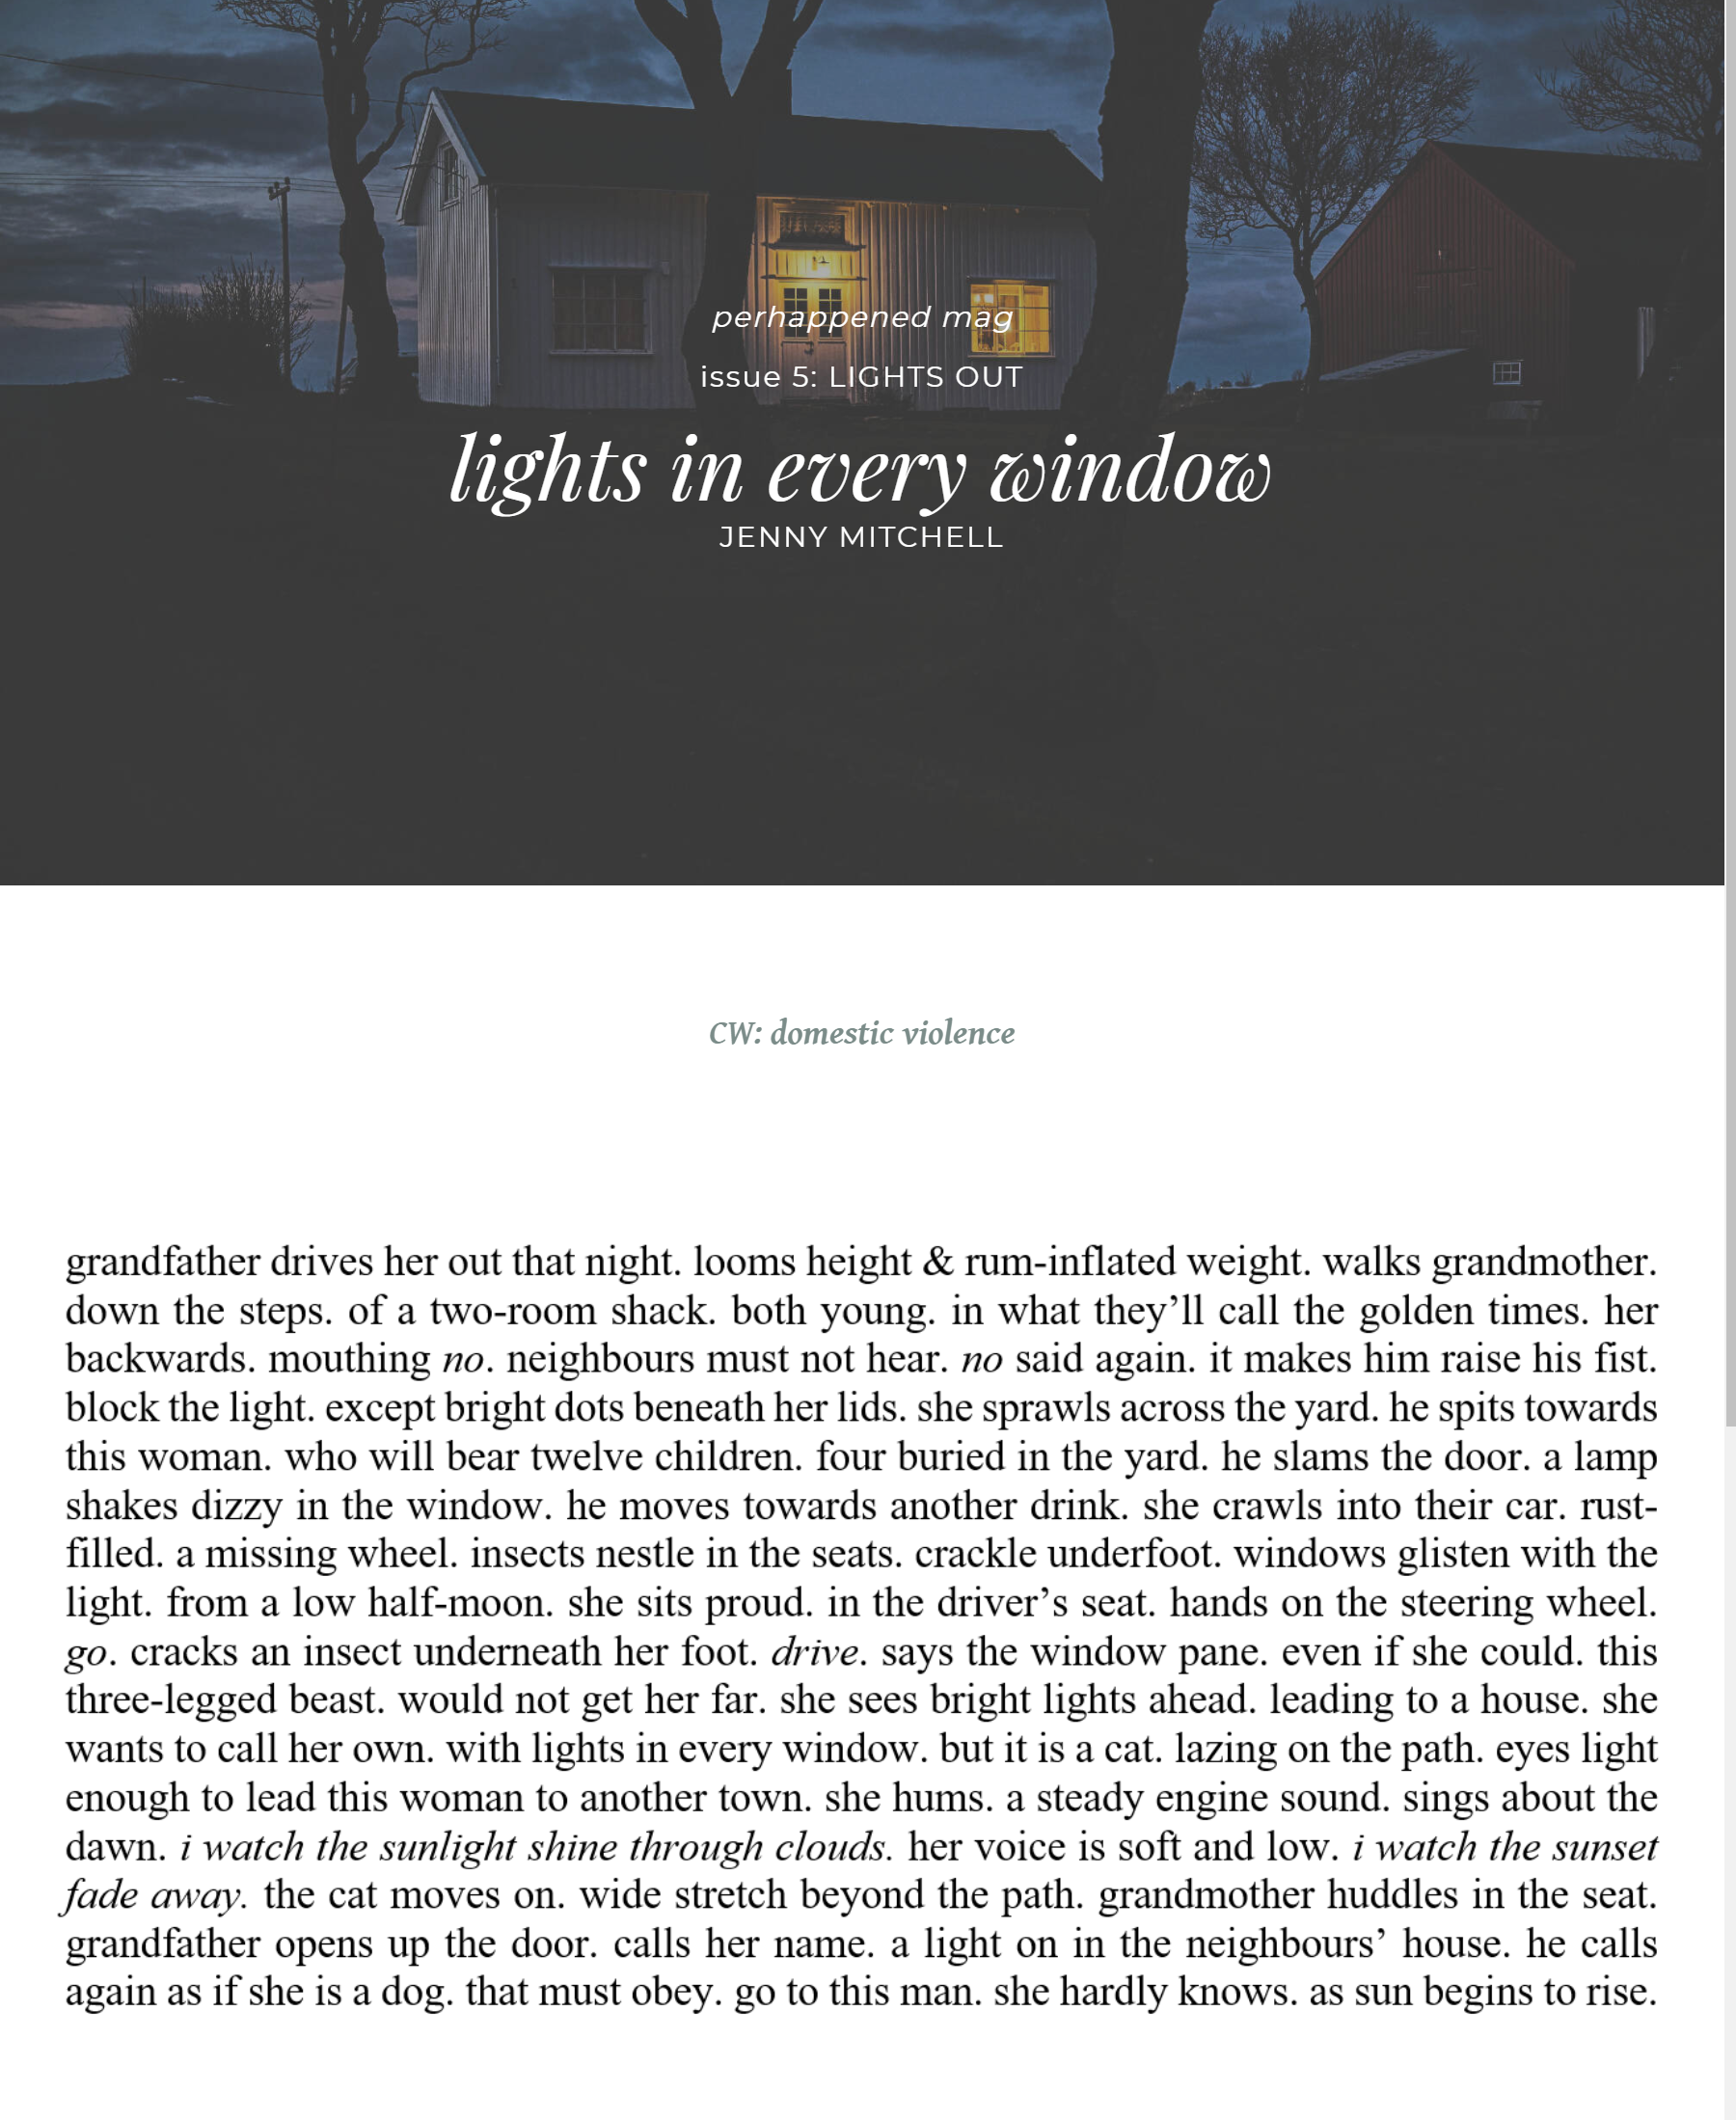 Lights in every window by Jenny Mitchell